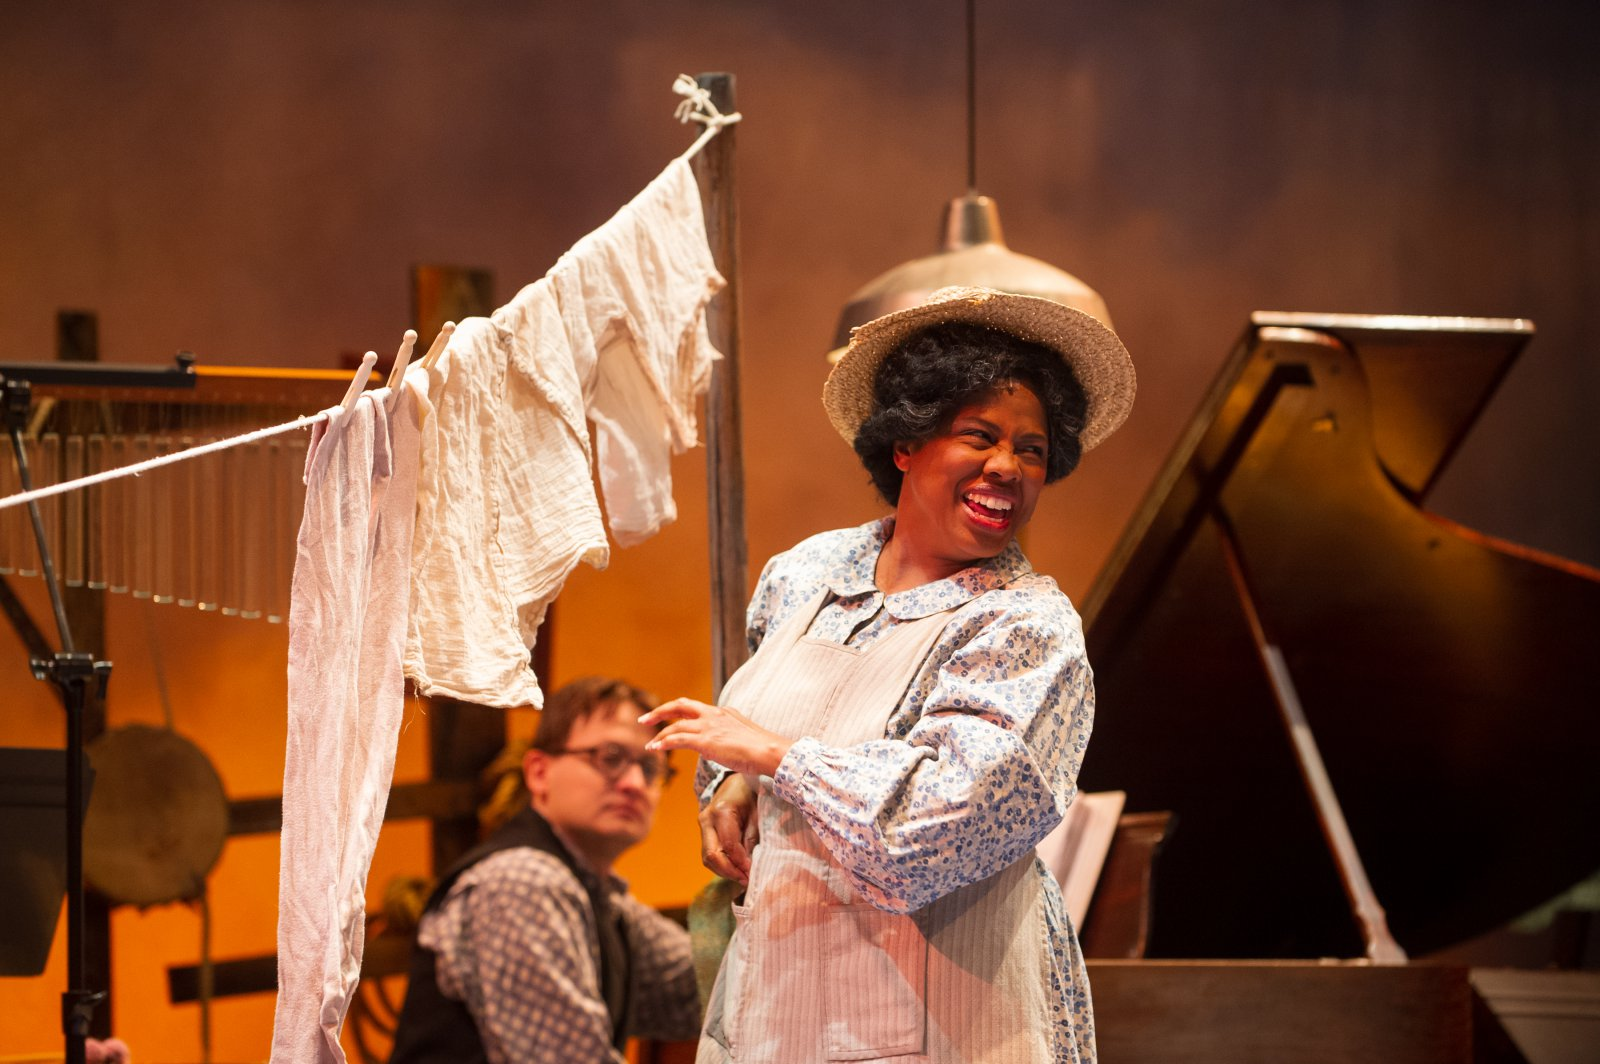 Cynthia Cobb (Aunt Eller) in Skylight Music Theatre's production of Oklahoma! September 27 – October 13.